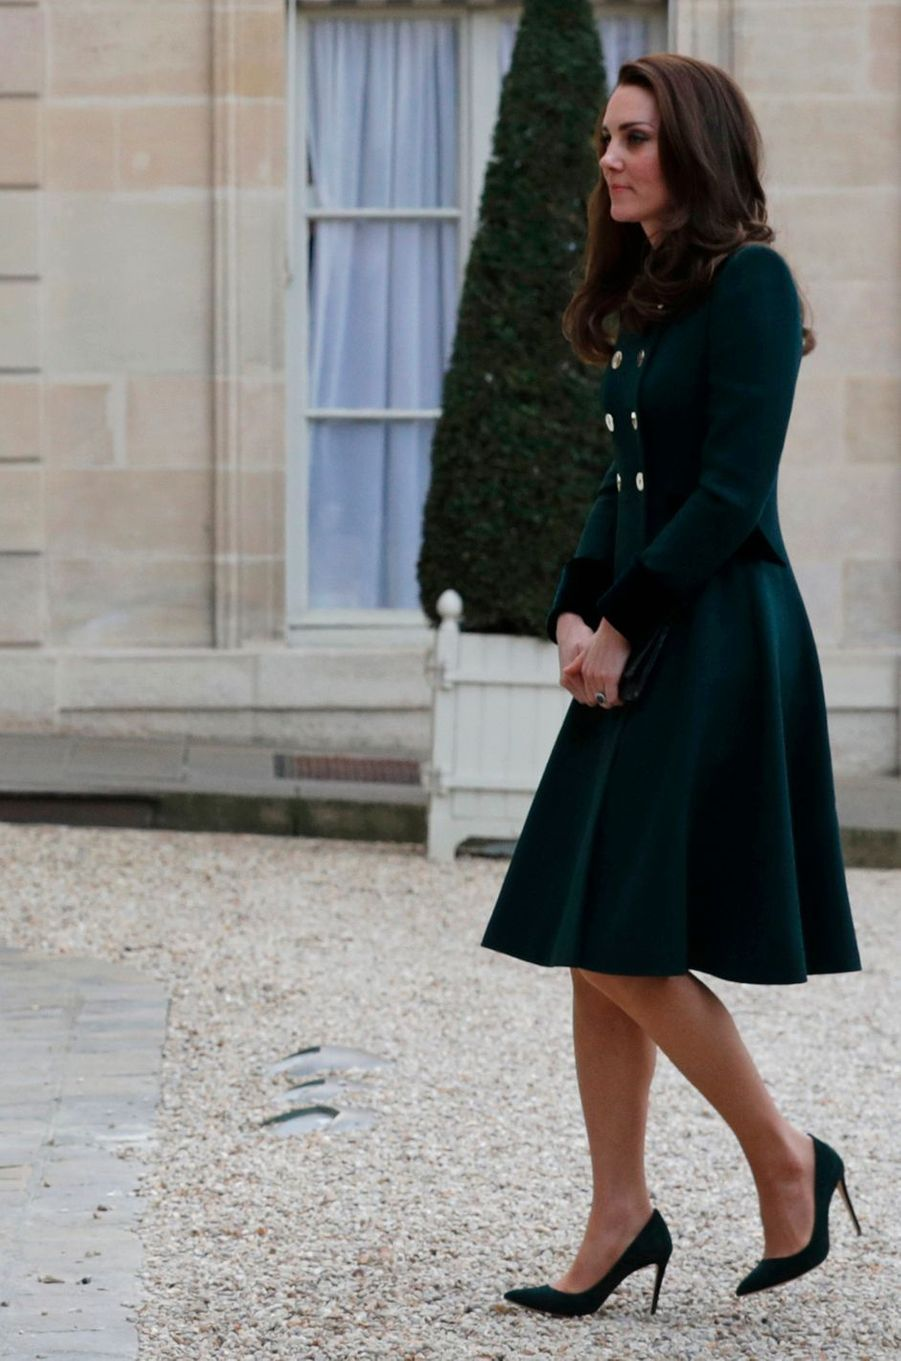 La duchesse de Cambridge à Paris le 17 mars 2017